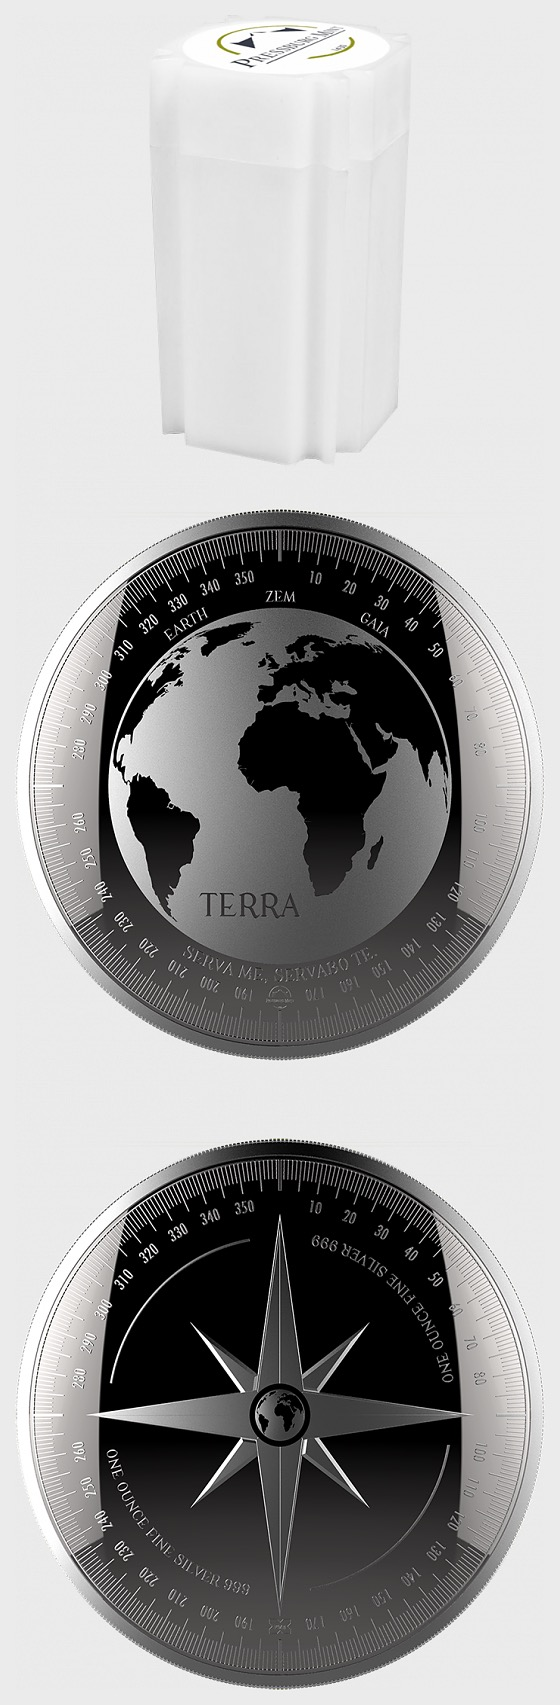 Terra - Tube of 20 Bullion - Coin Tube